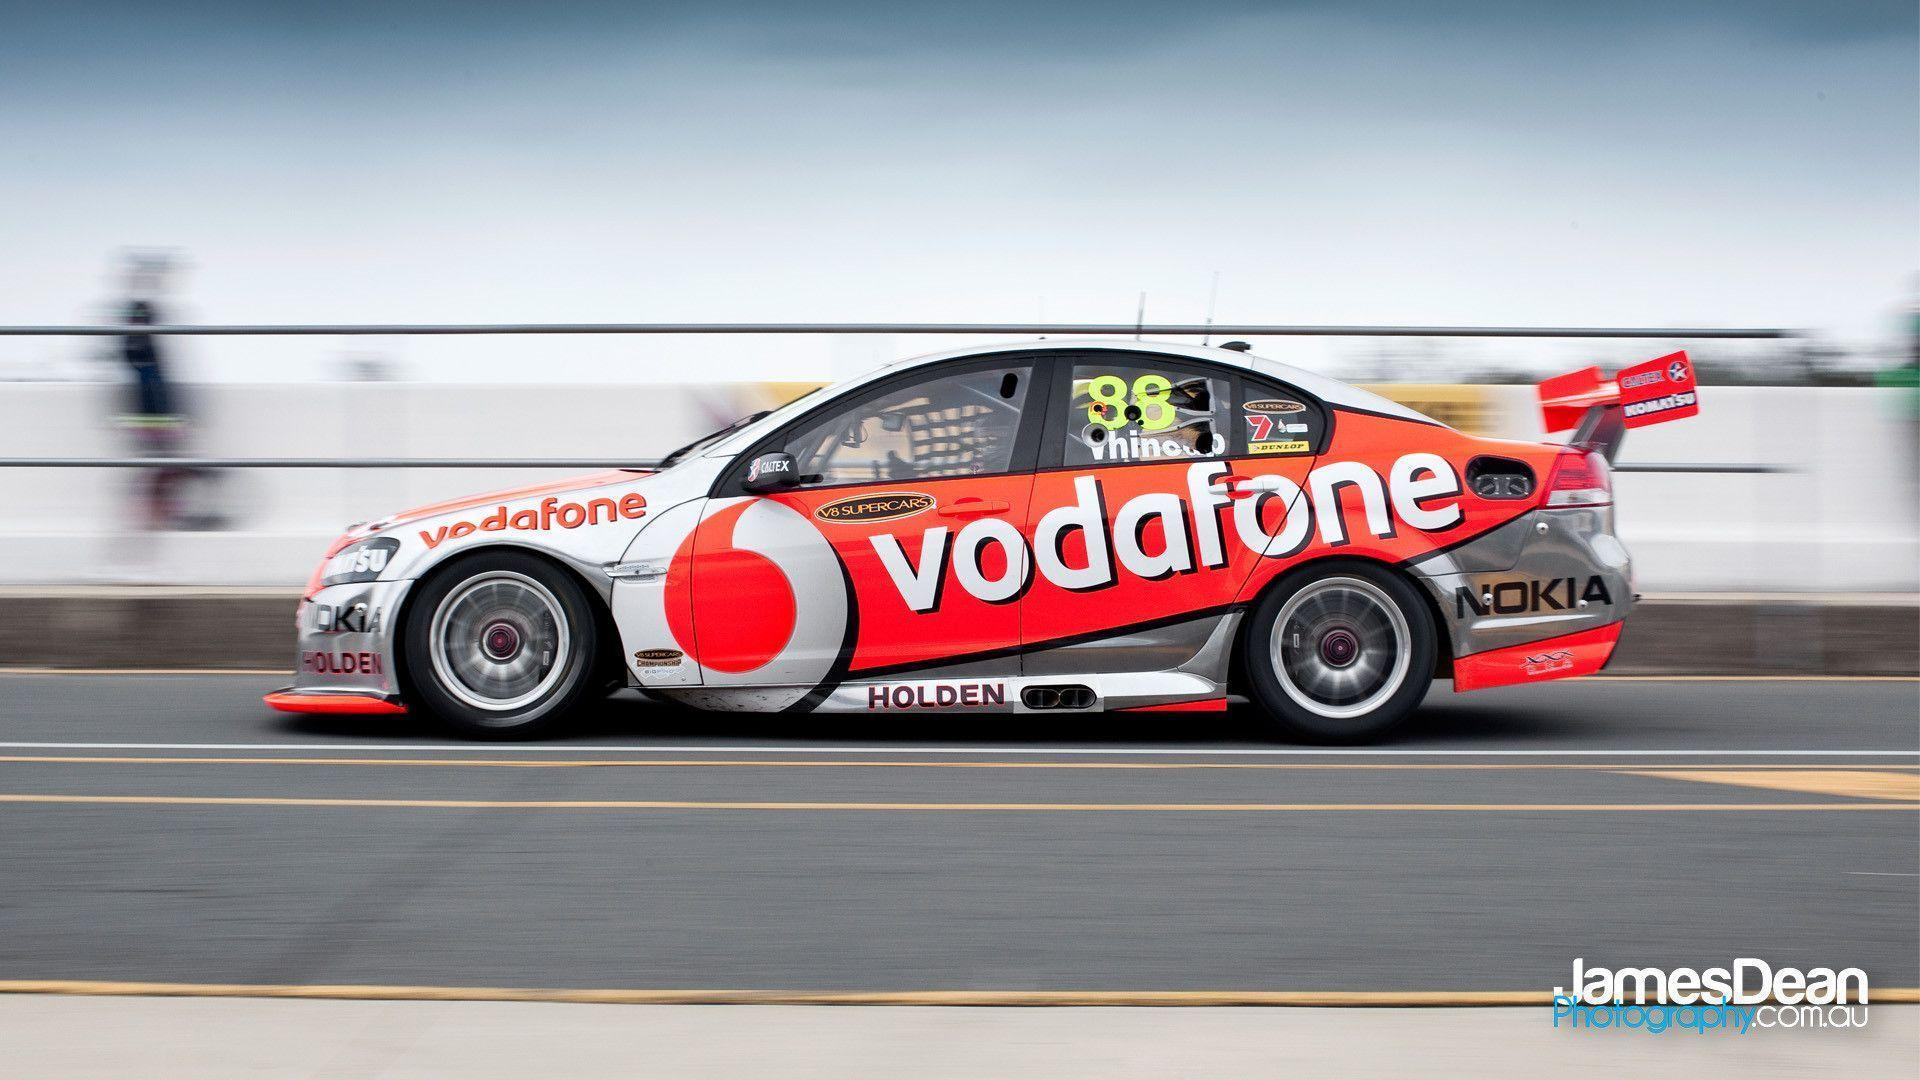 V8 Supercar Wallpapers - Wallpaper Cave